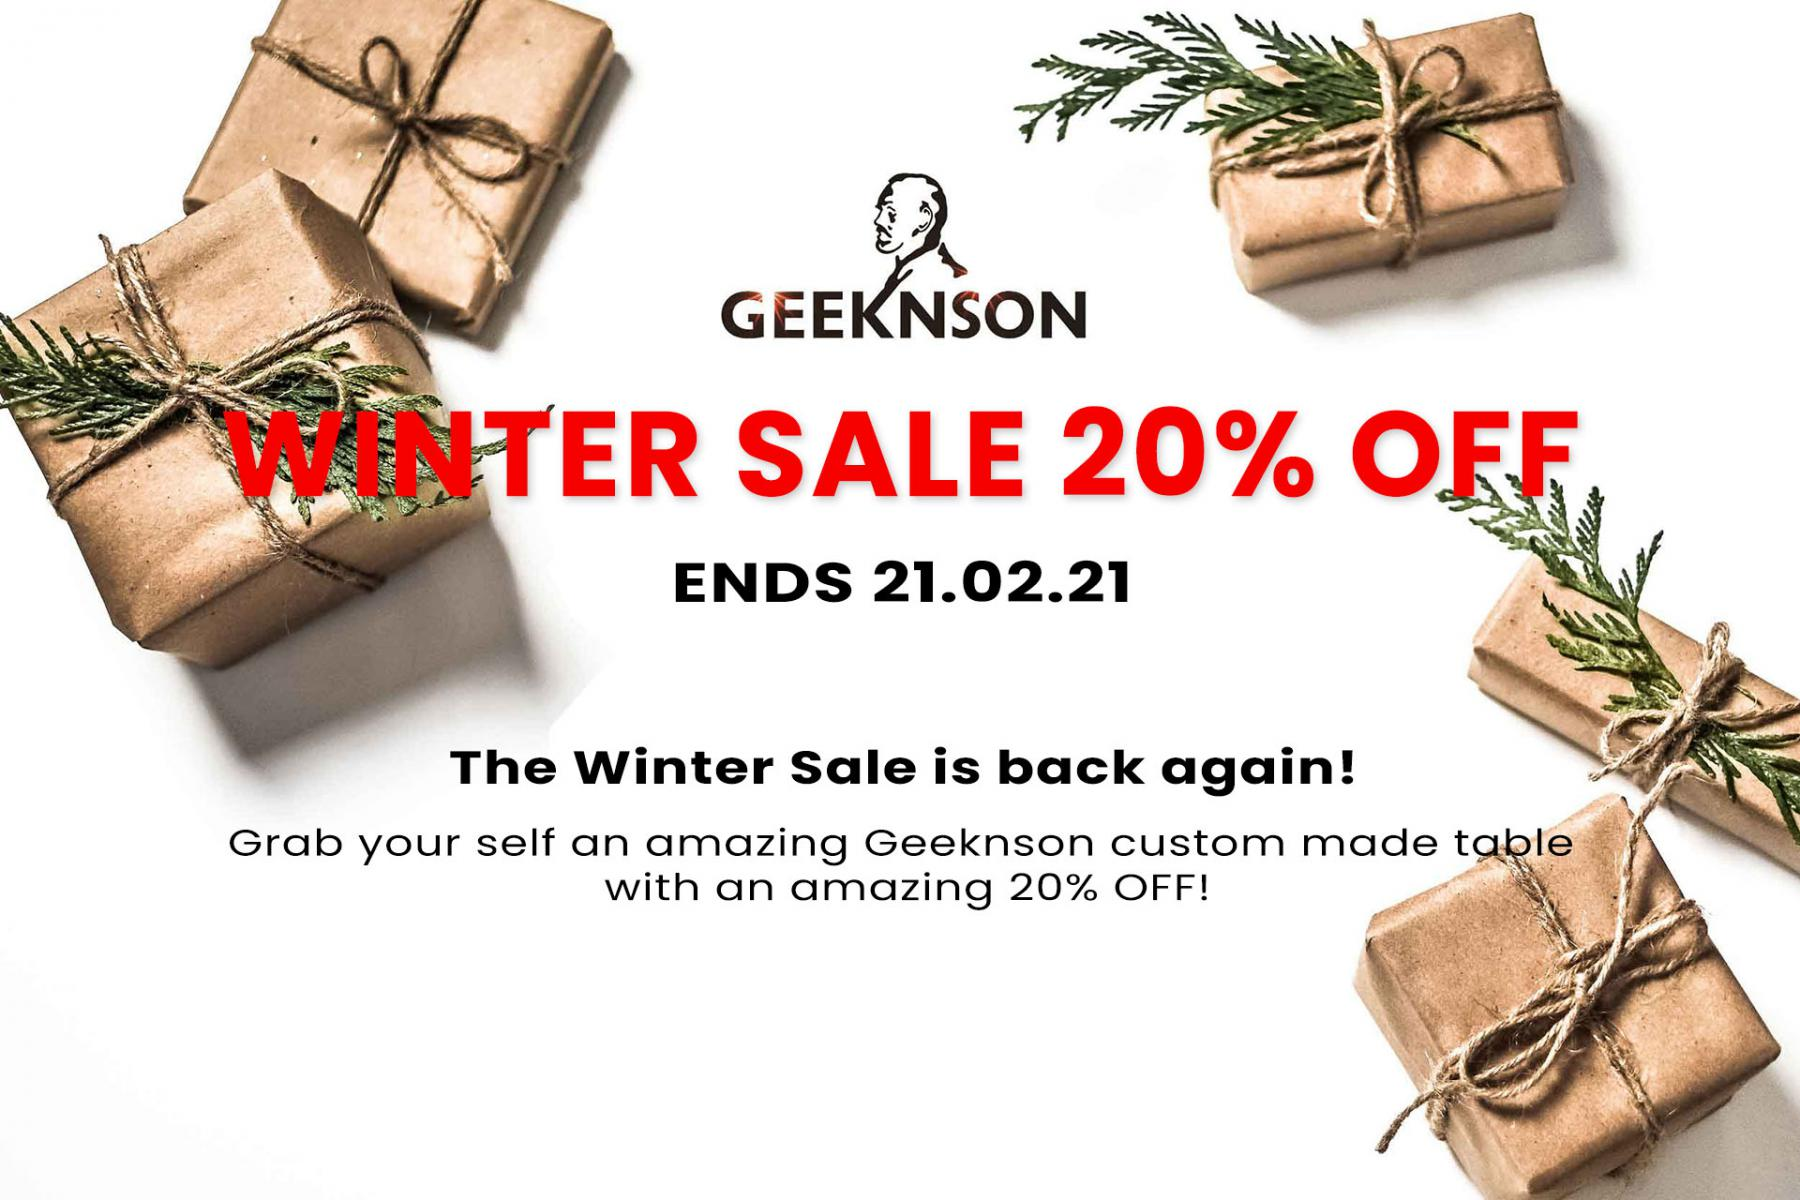 geeknson winter sale